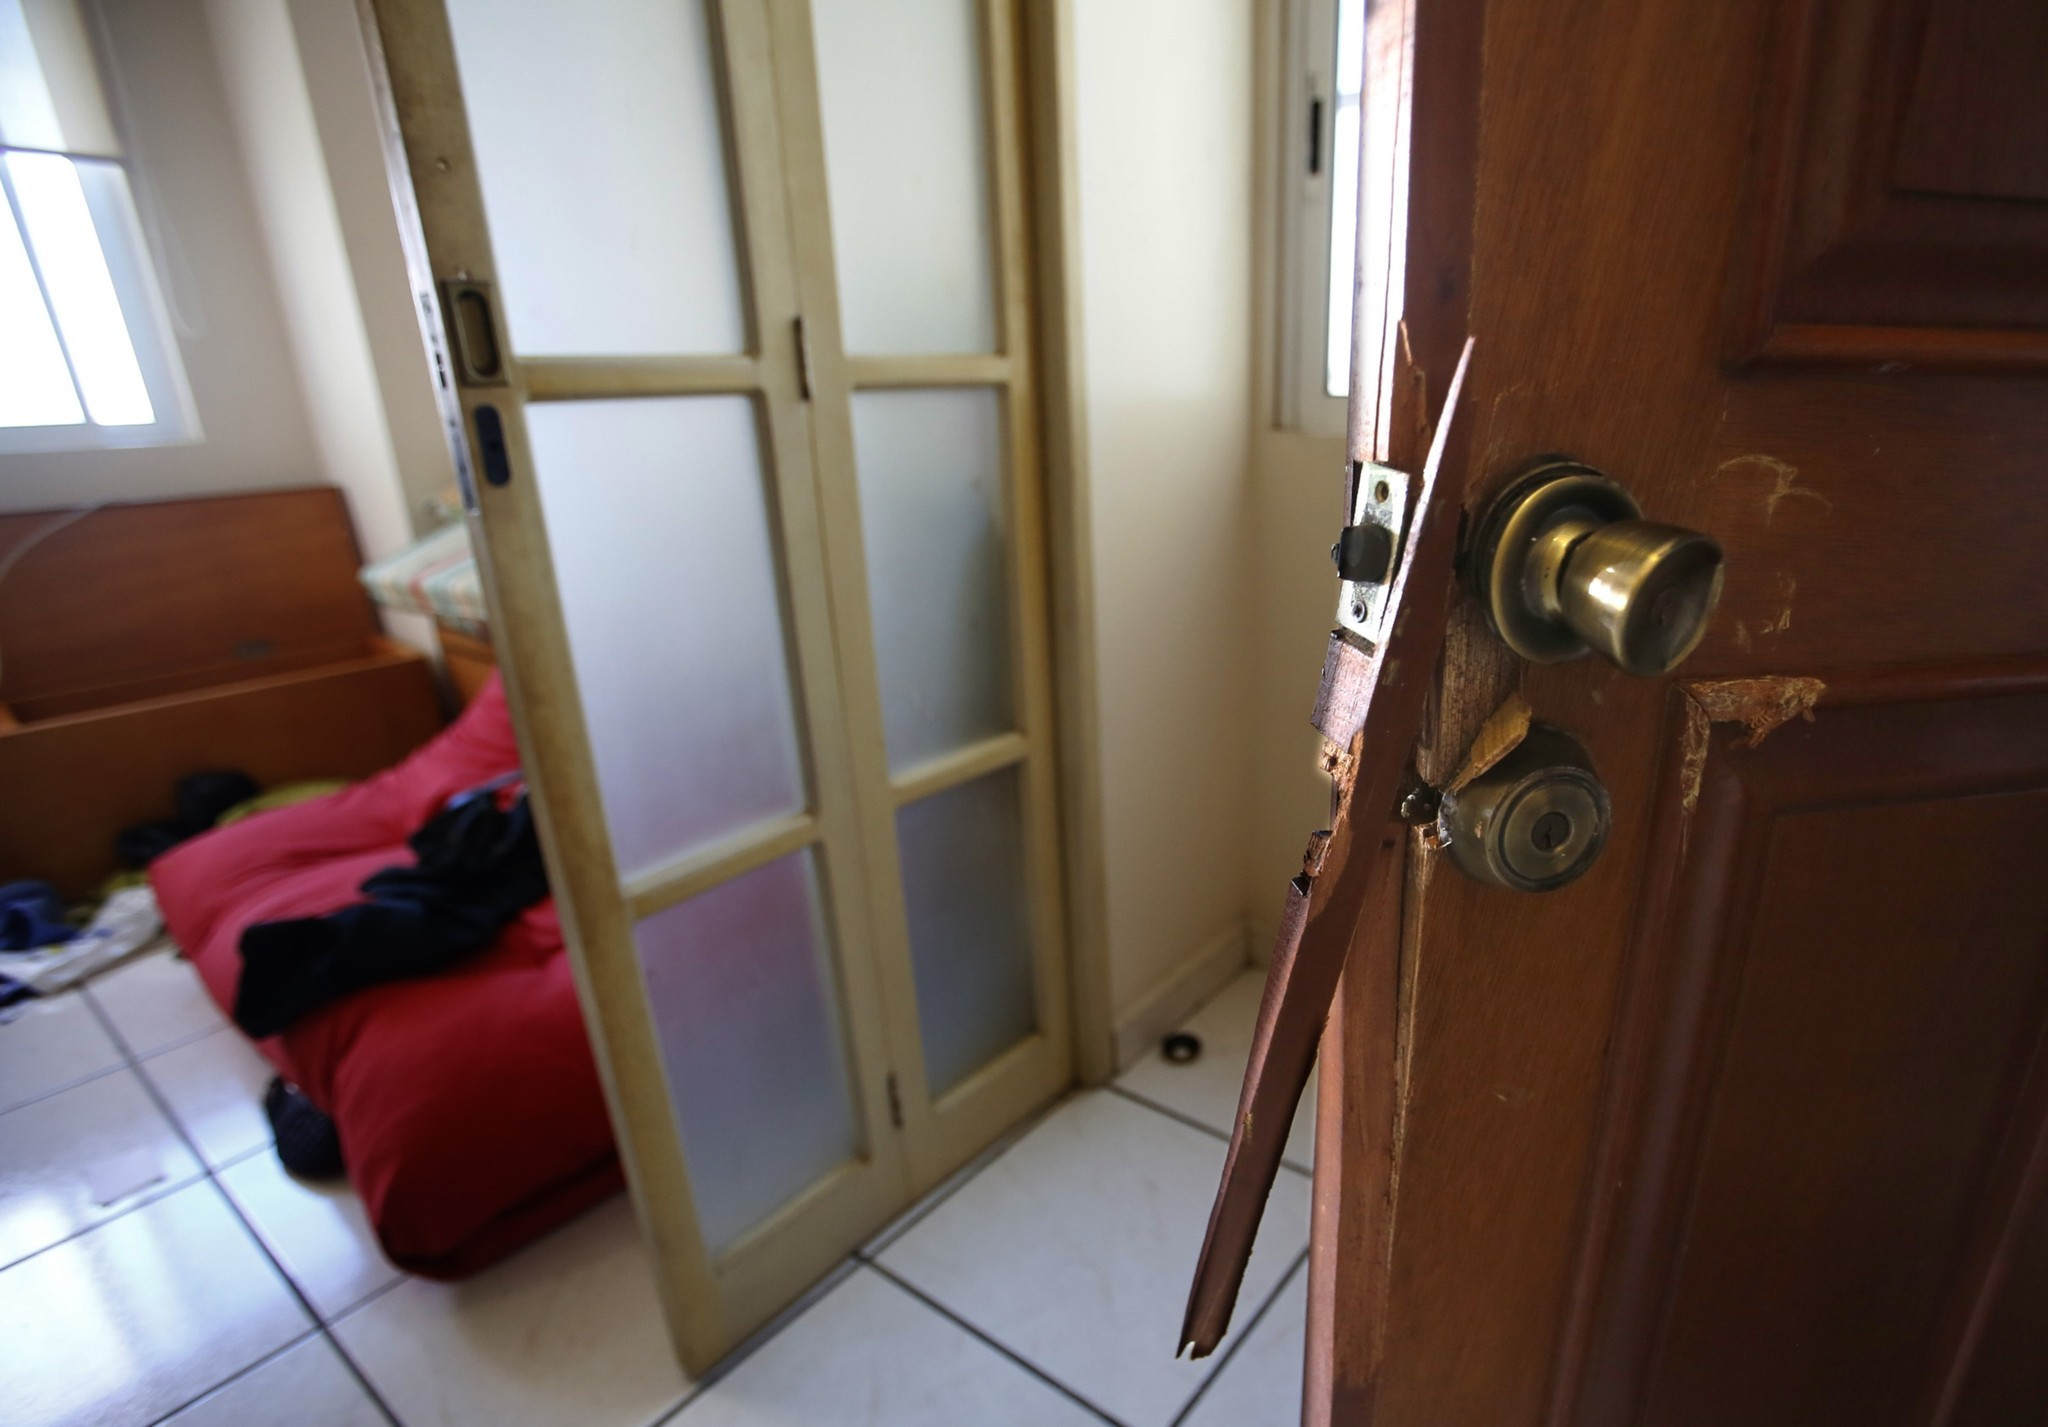 "Inside the condo where Joaquin ""El Chapo\"" Guzman was captured - Broken door"